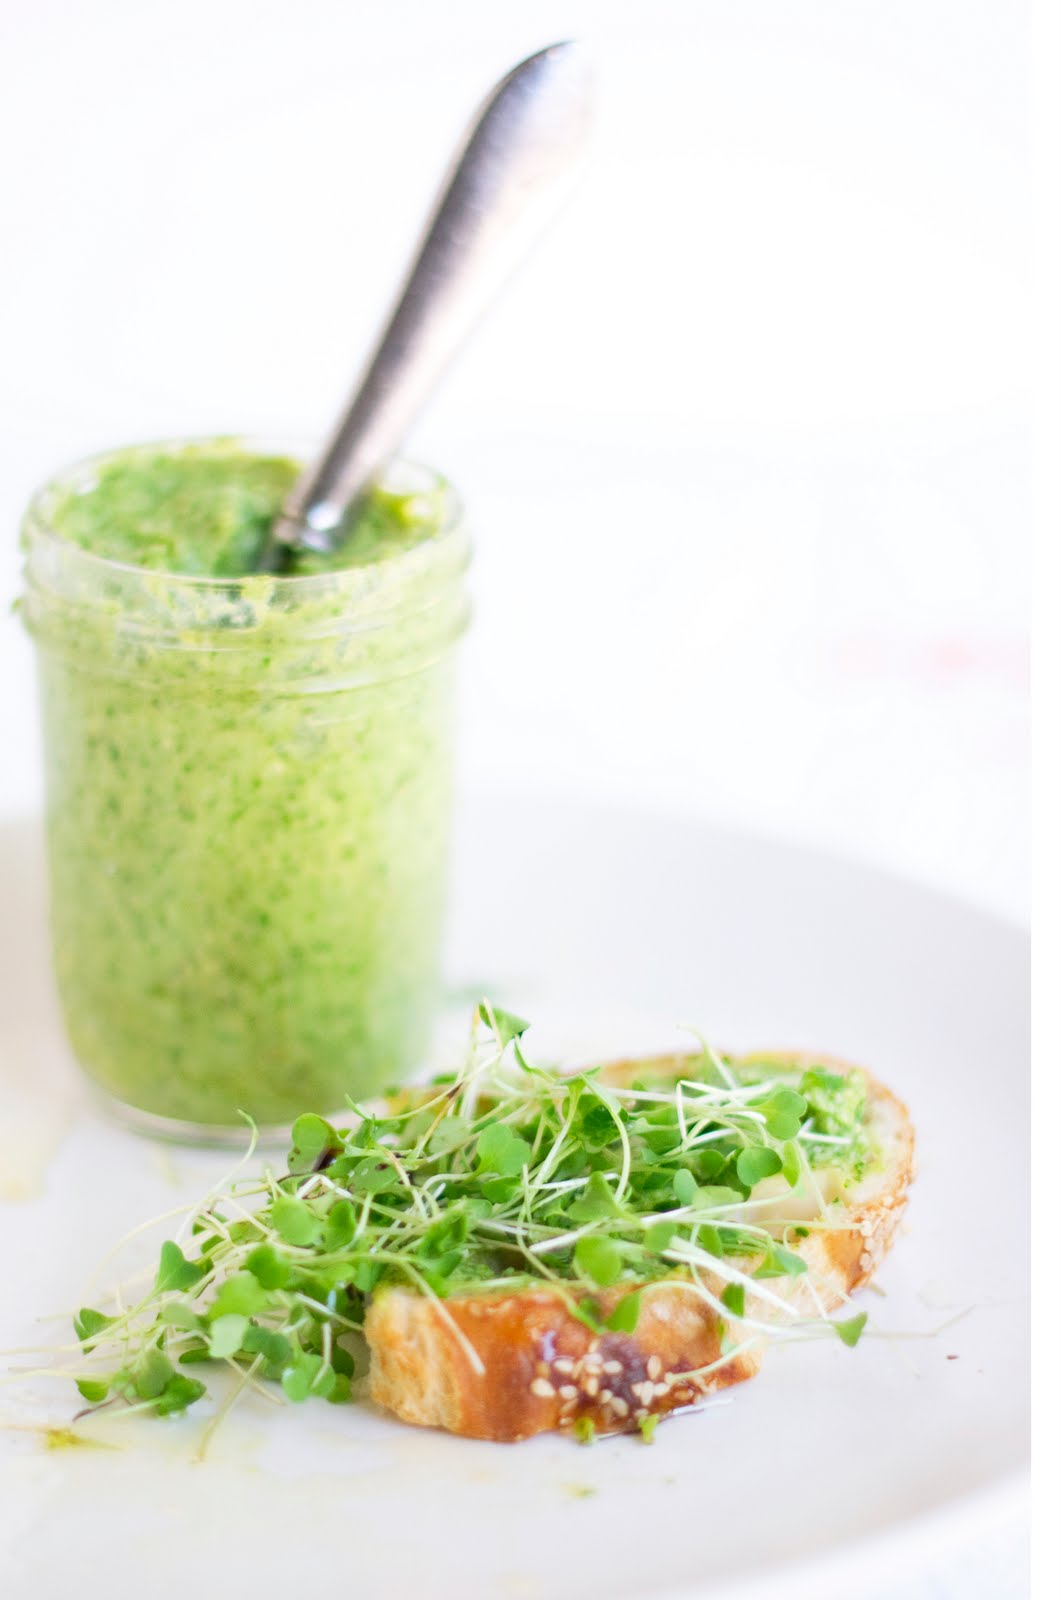 12 Microgreen Recipes Packed With Macro Flavor | Brit   Co